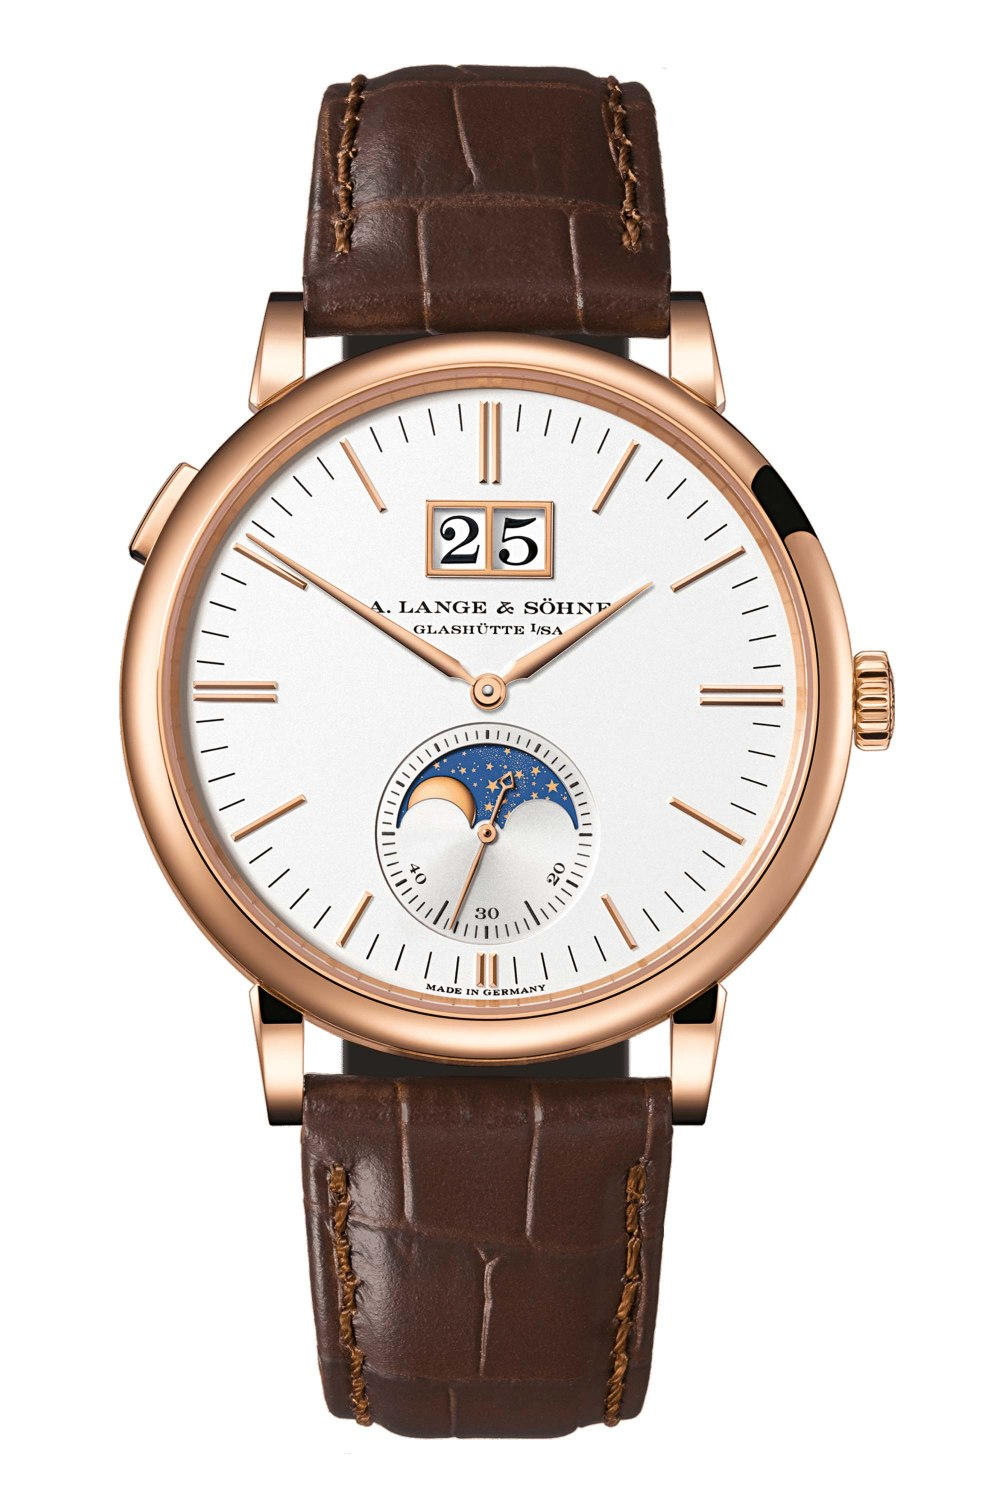 A.LANGE & SOHNE Saxonia Outsize Date Rose Gold 384.032